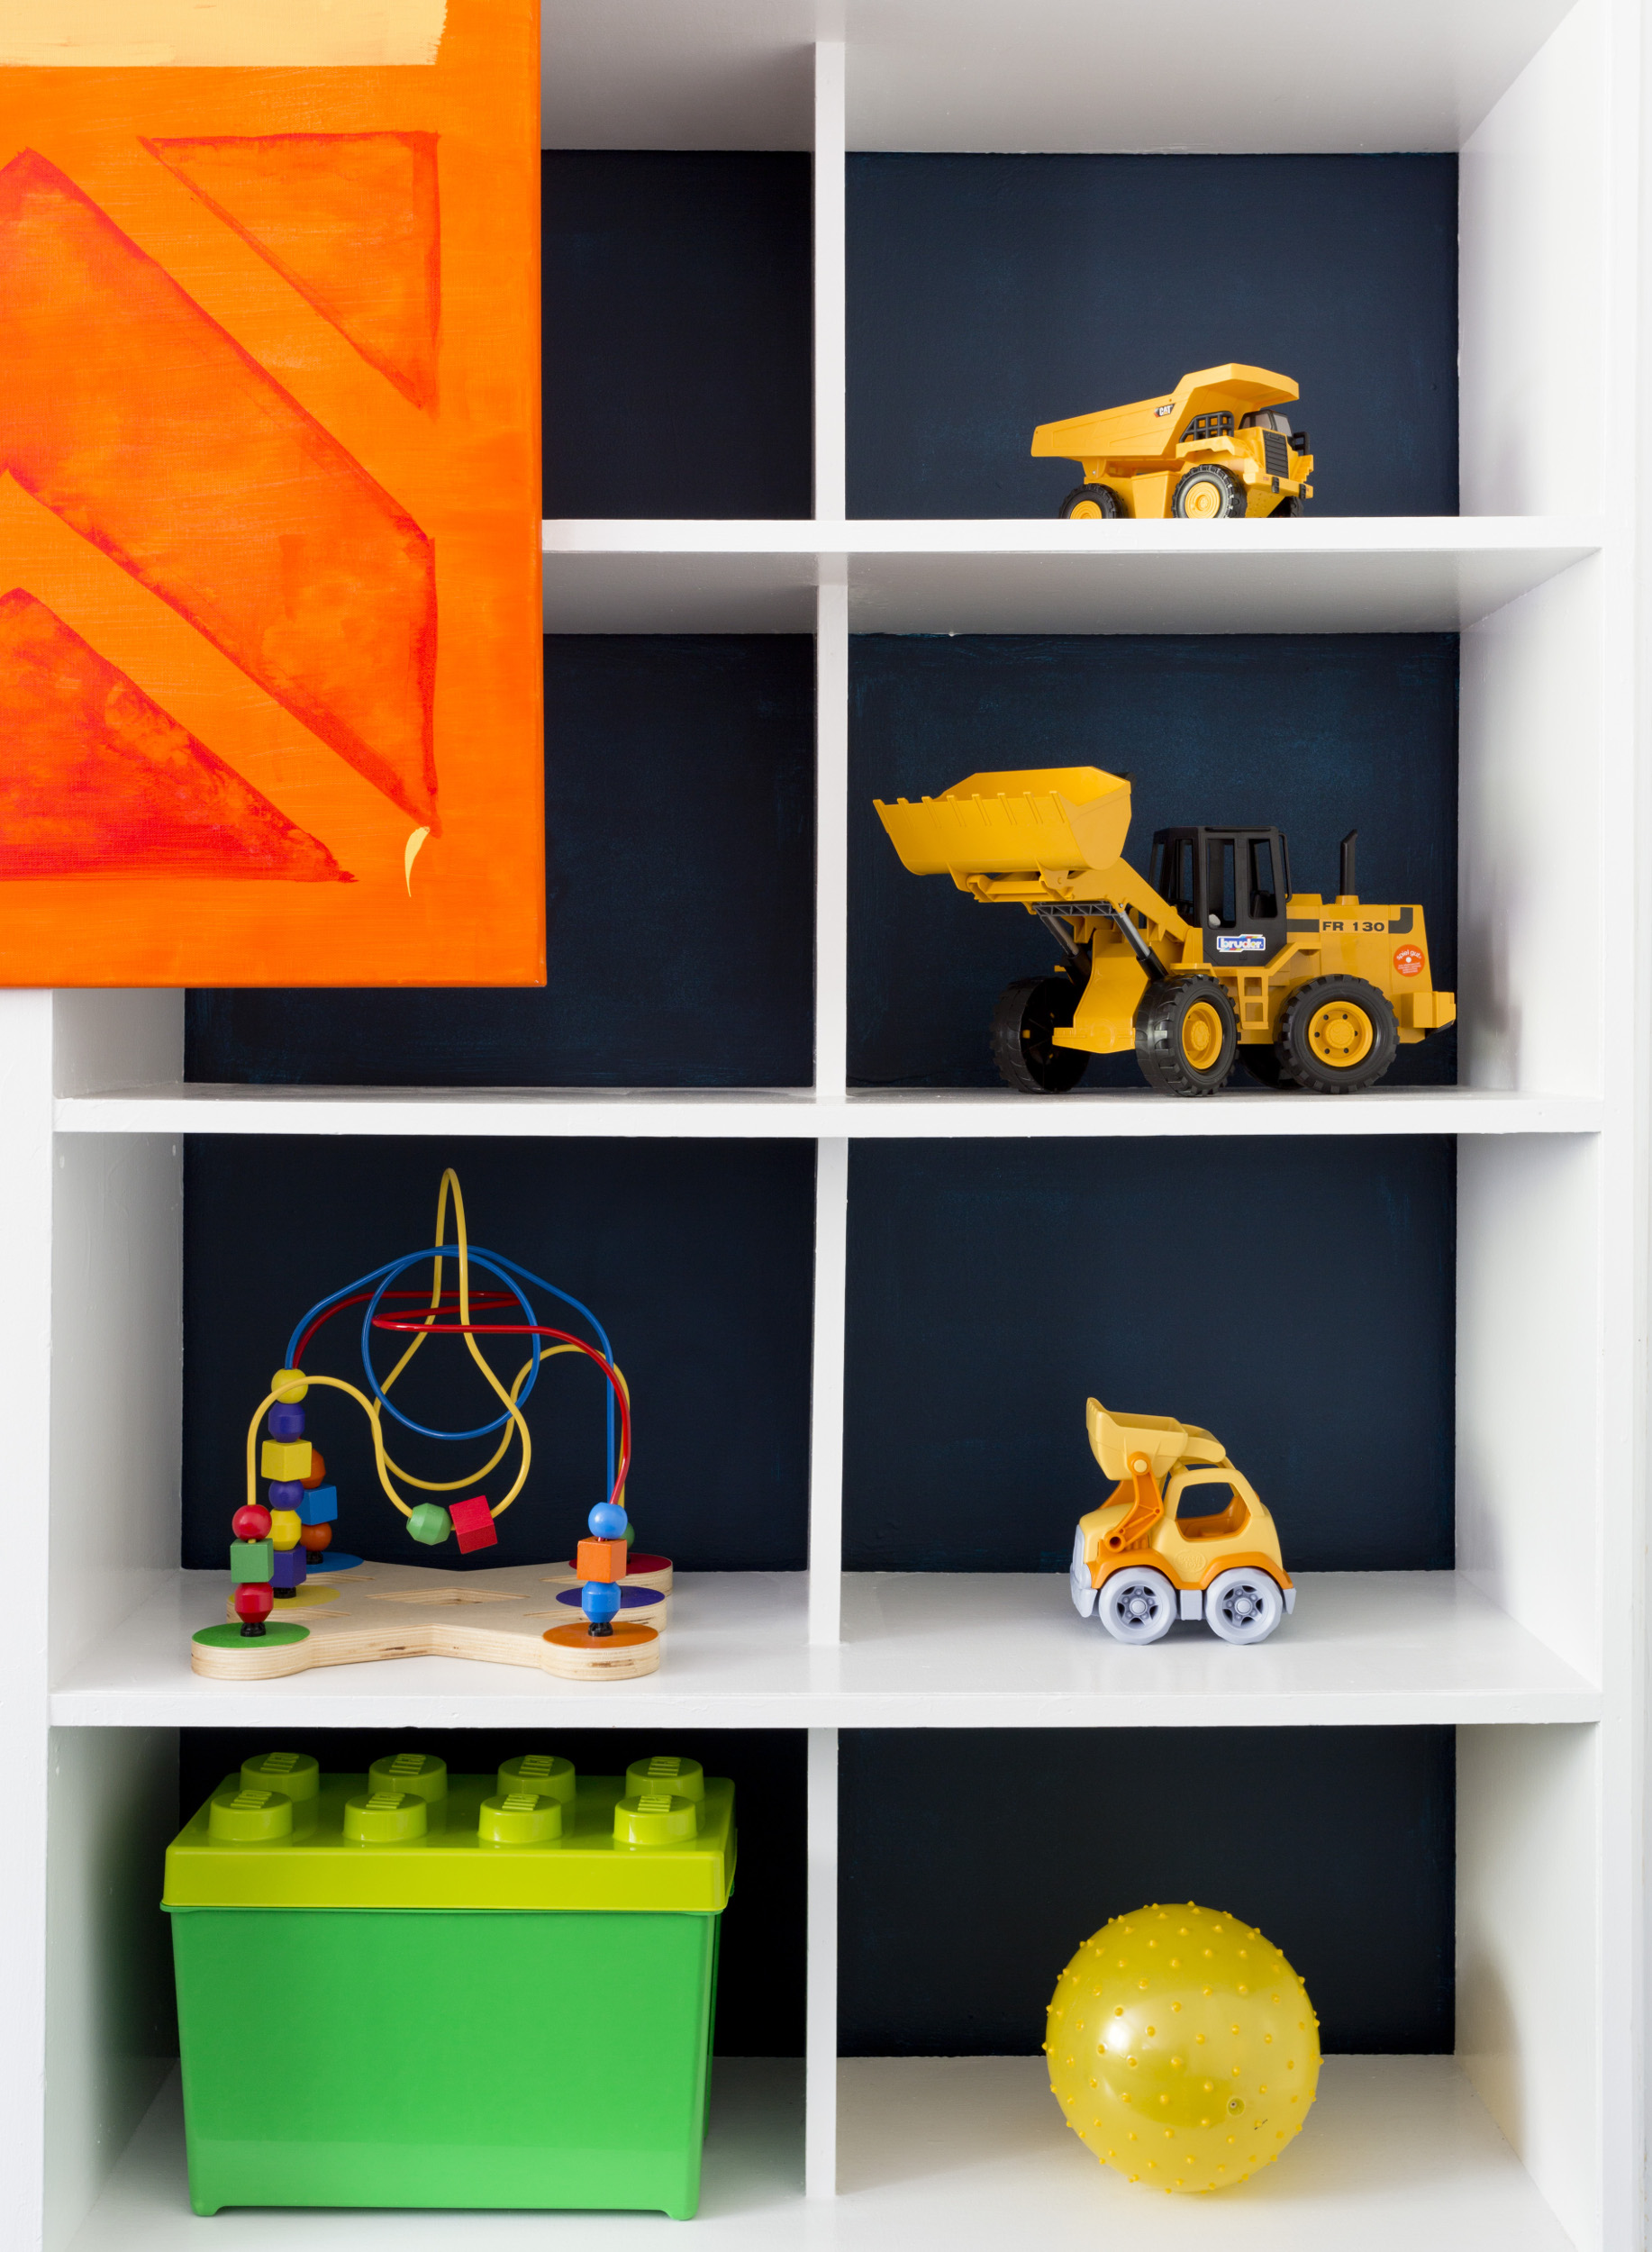 Boys Room Toy Storage Ideas Caroline Kopp CT Interior Designers.jpg